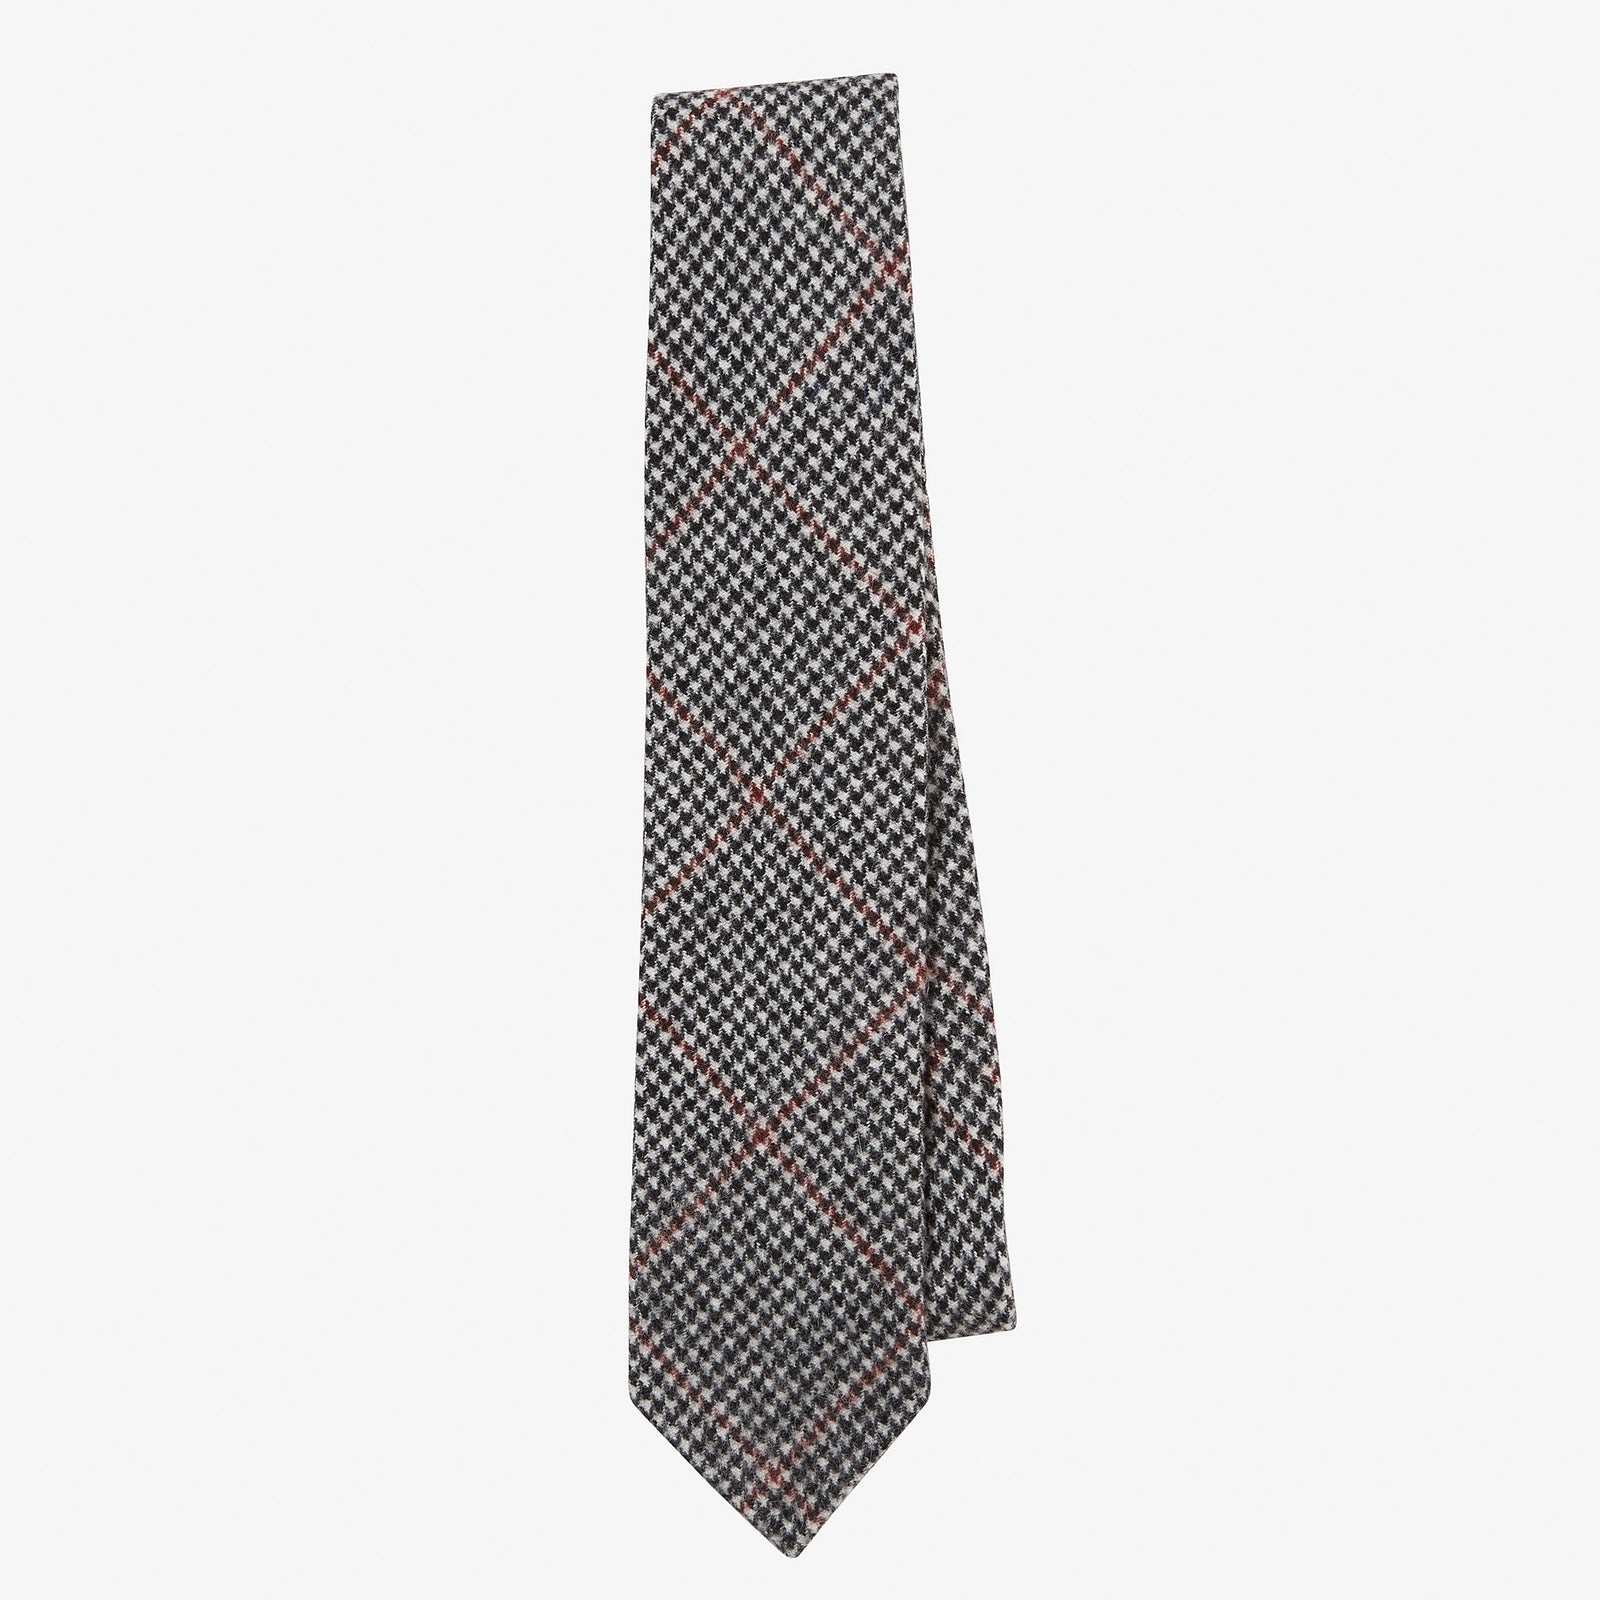 Cashmere Tie Houndstooth Red Overcheck